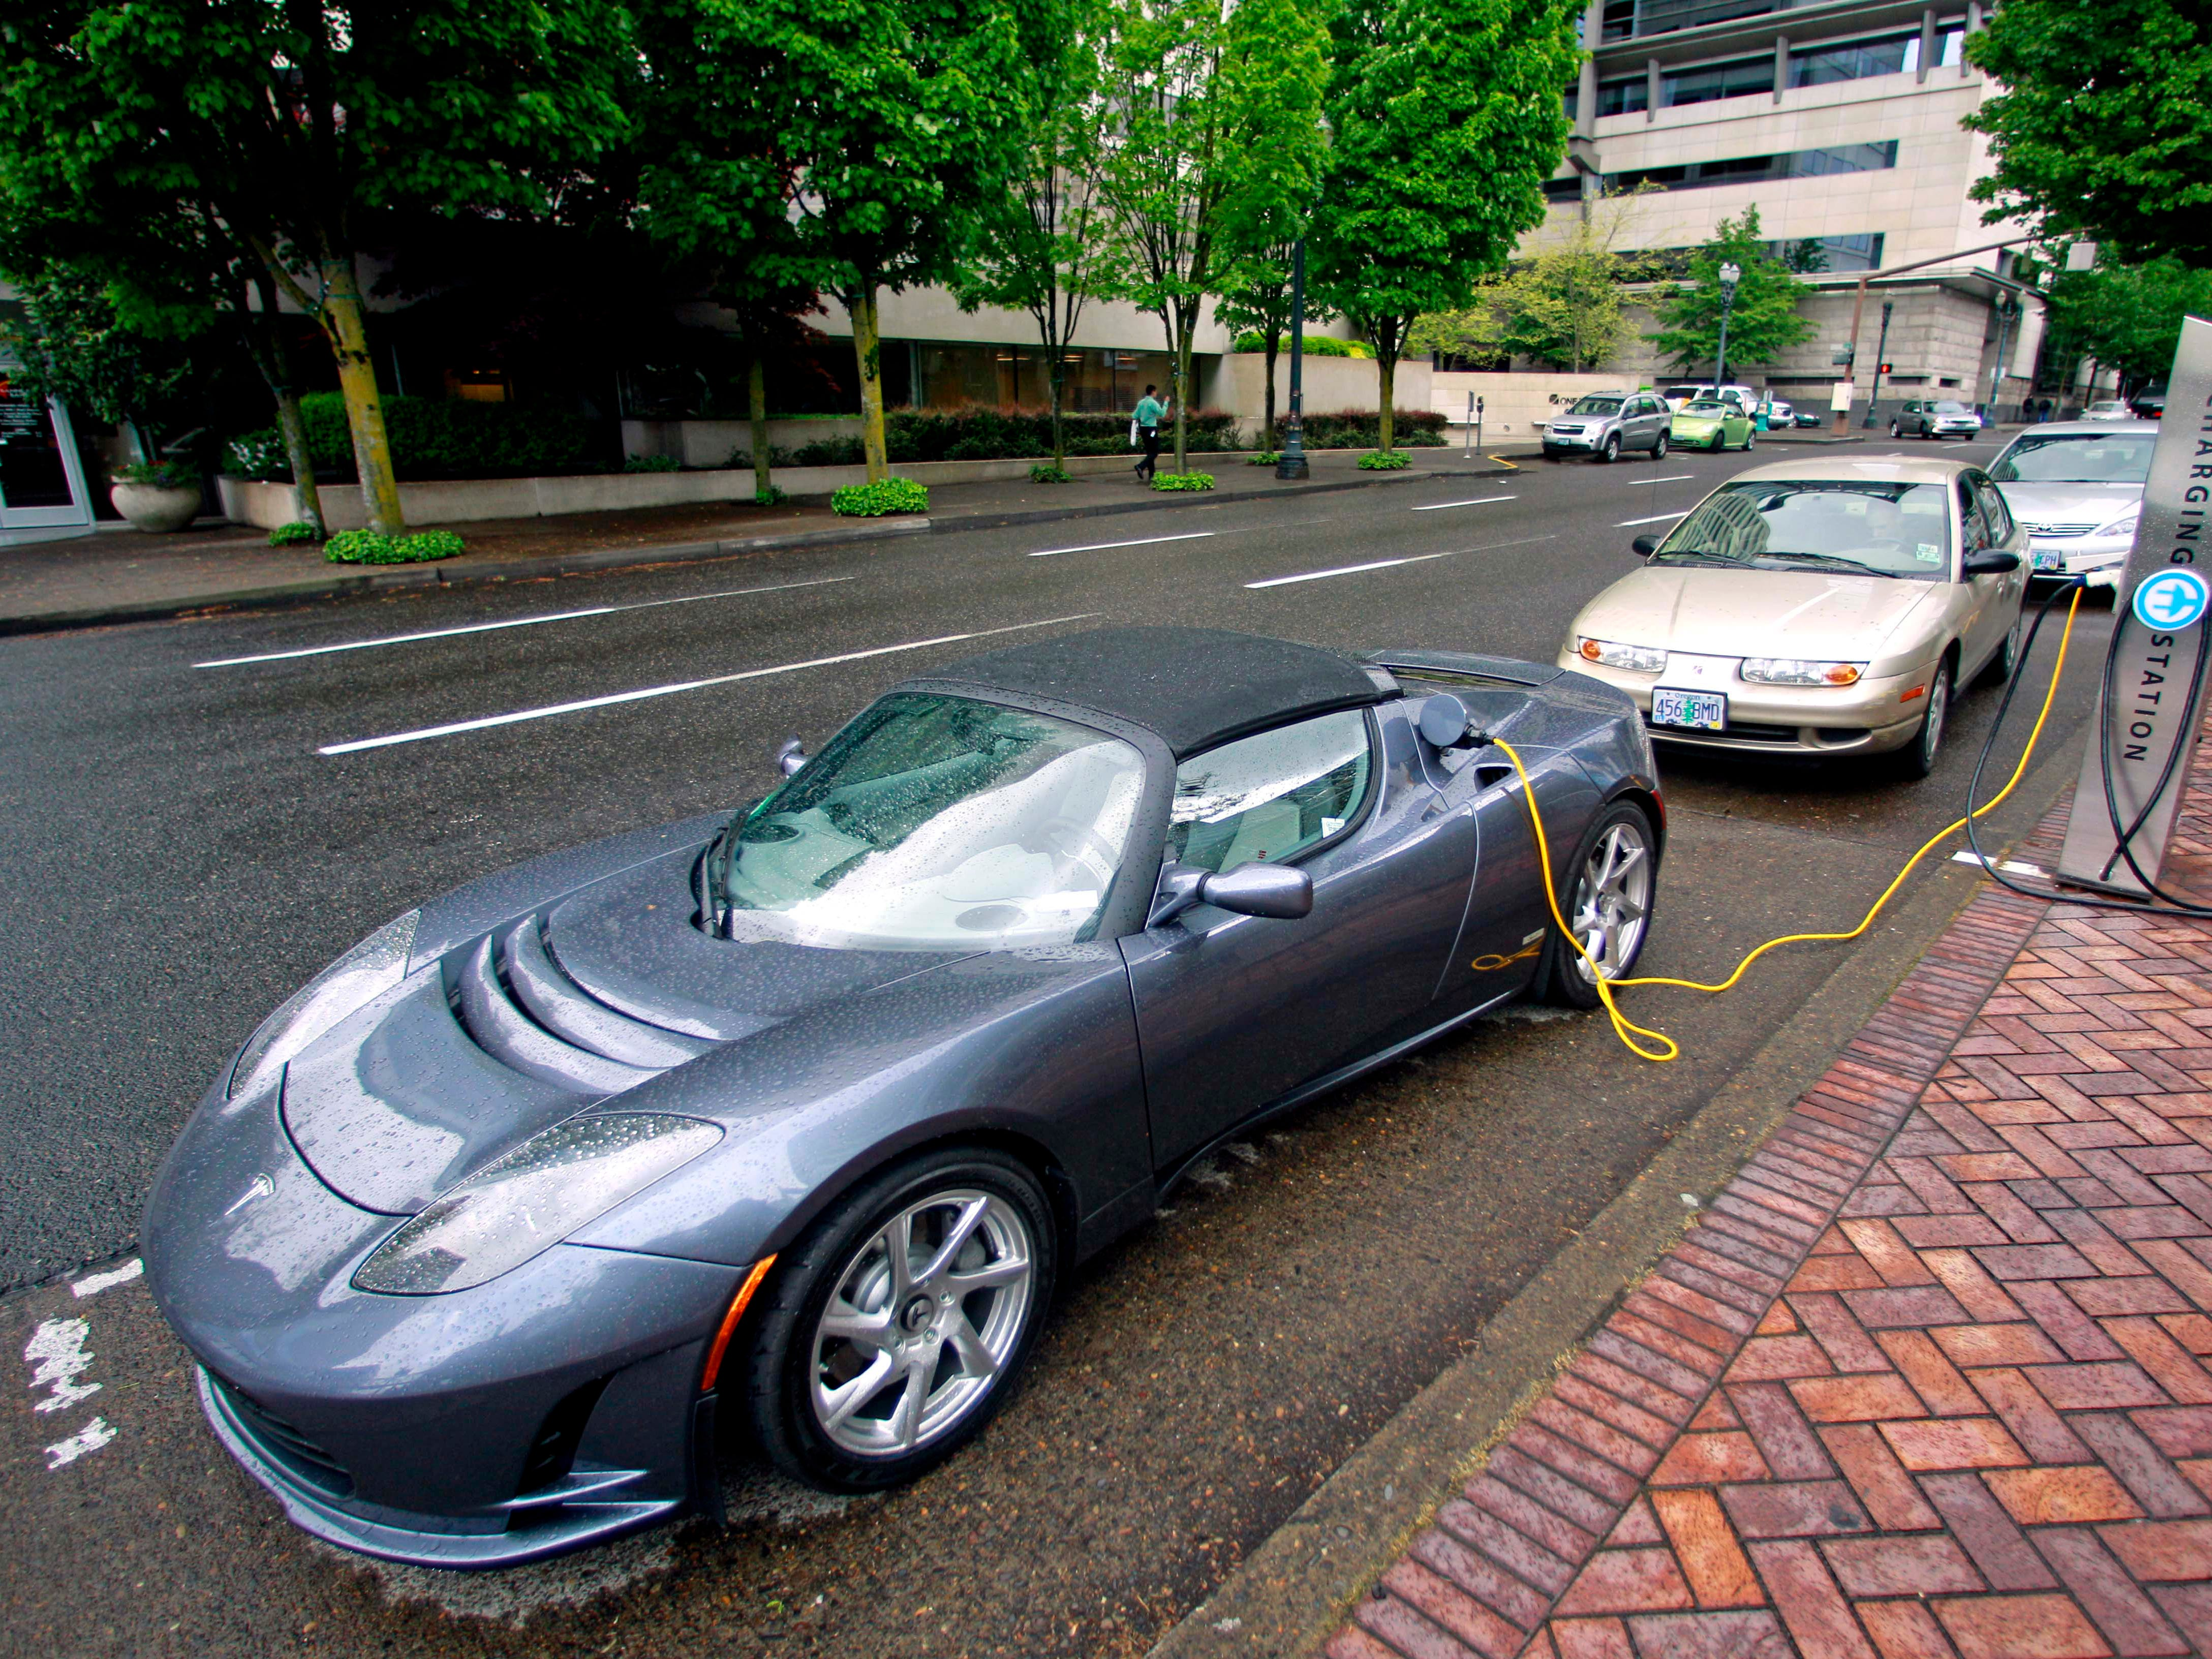 A Tesla Roadster Sport at a charging station in Portland, Ore. May 27, 2011.